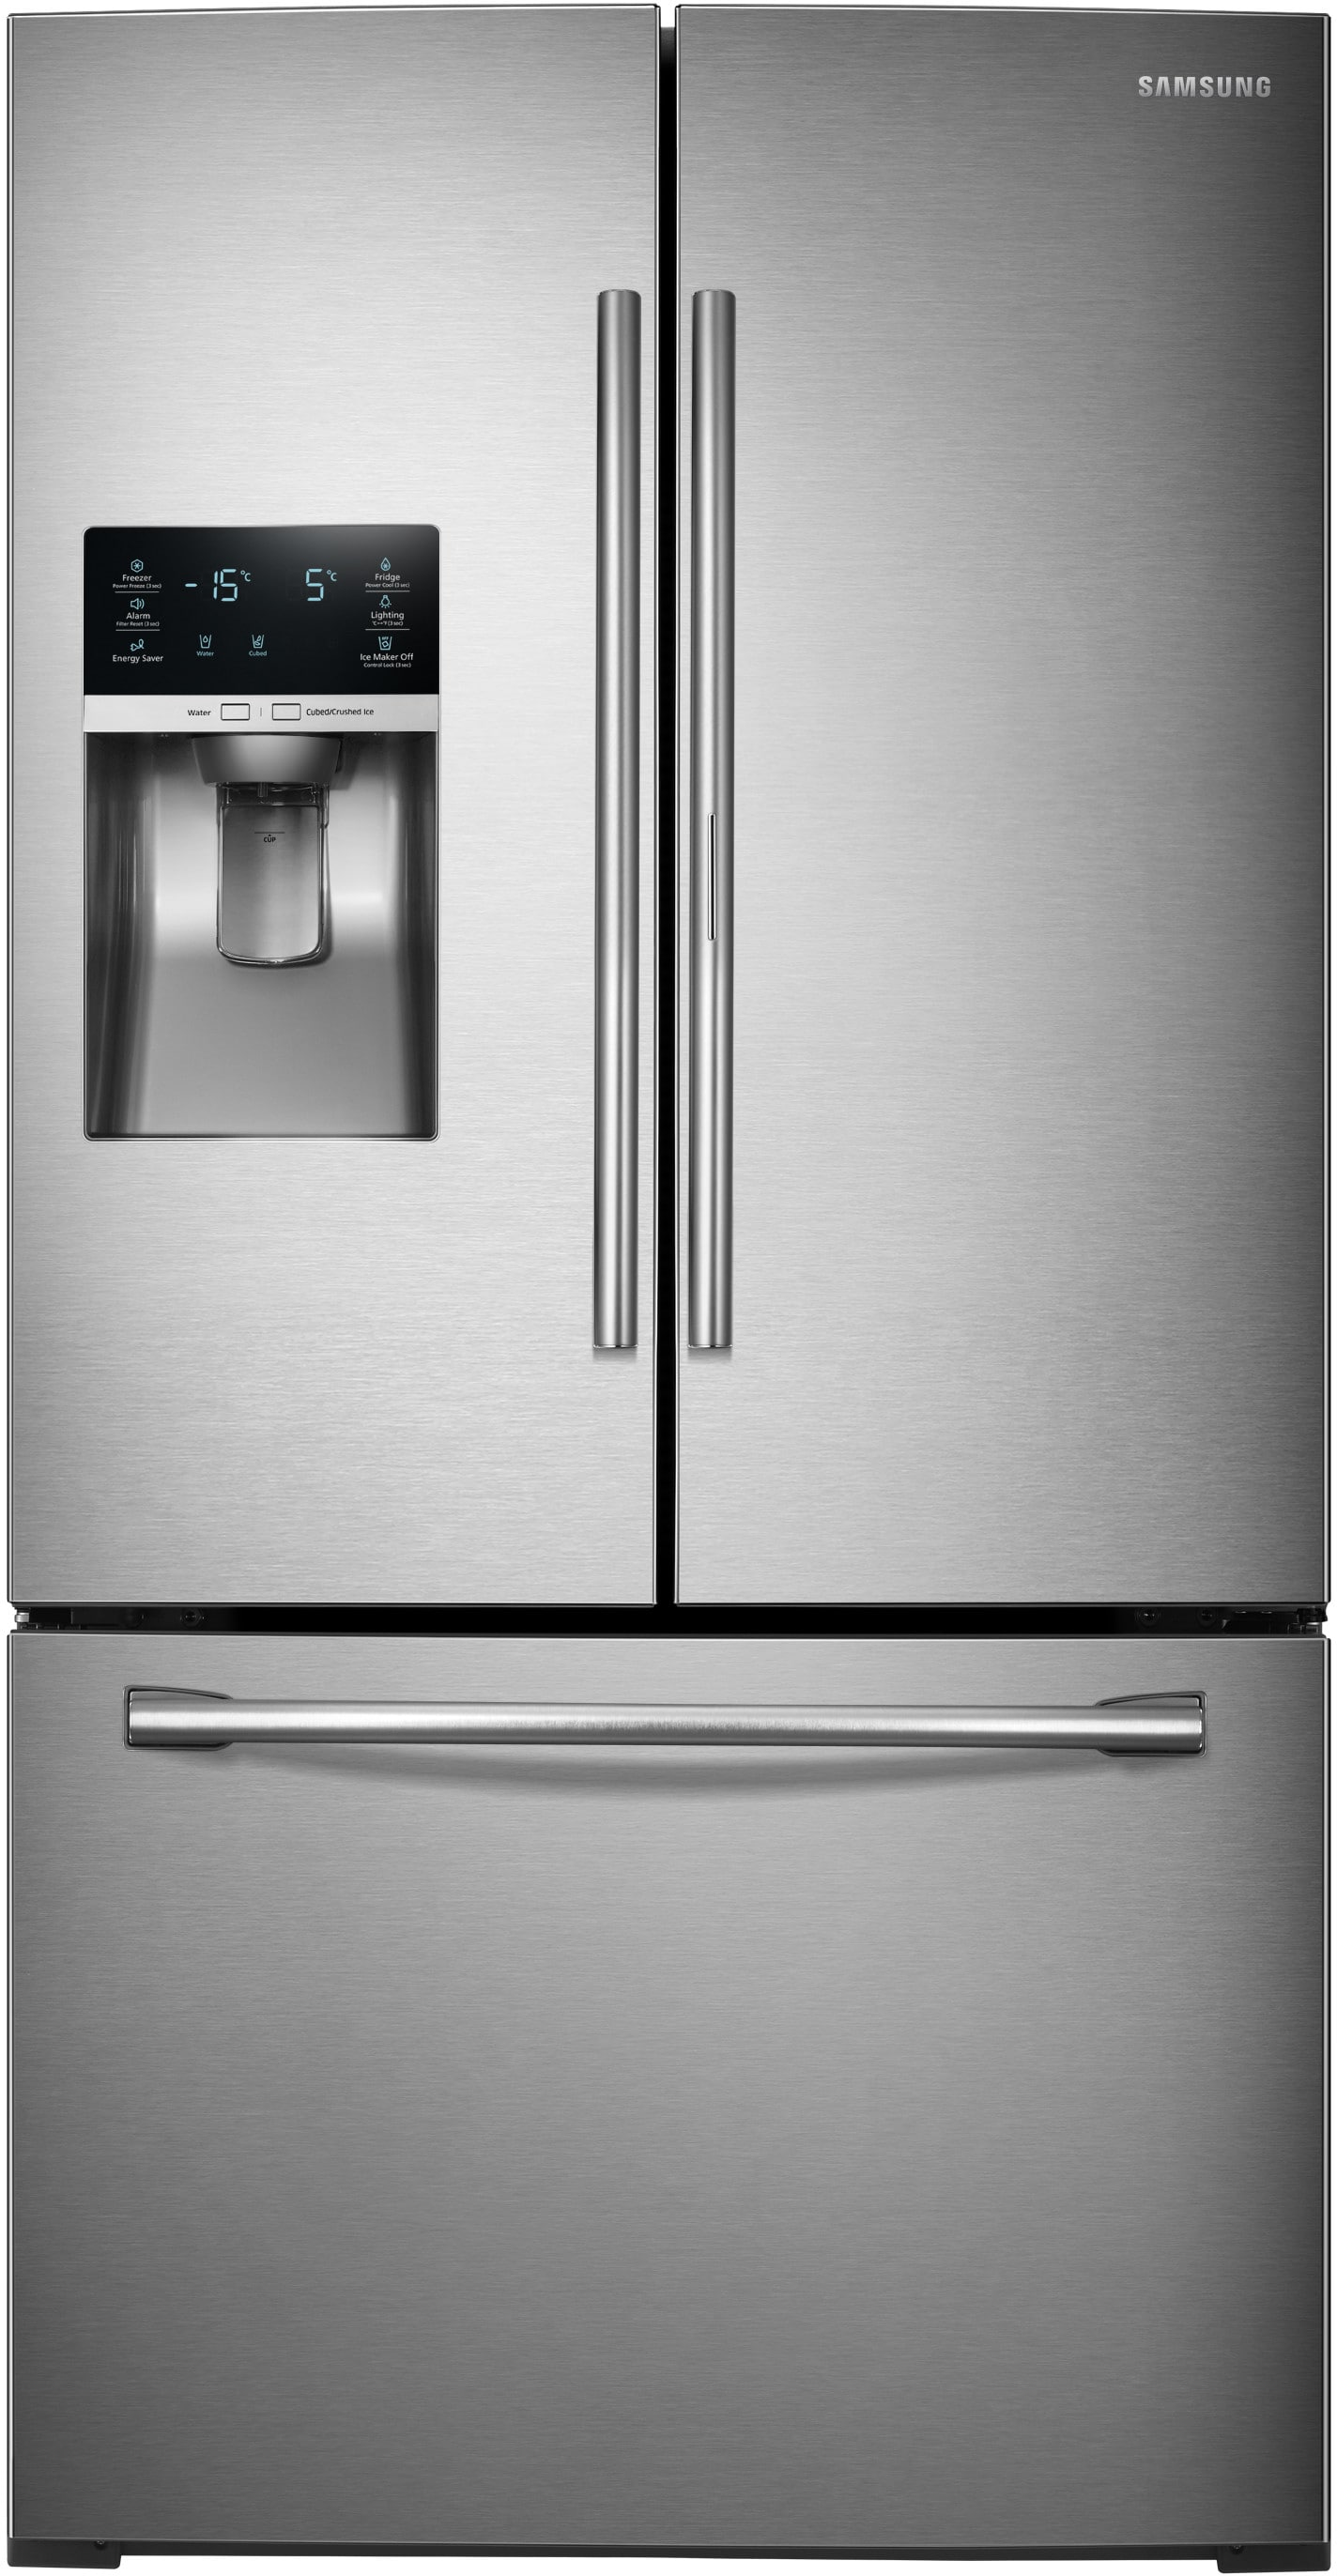 RF28HDEDBSR Samsung 36 Inch Food ShowCase French Door Refrigerator